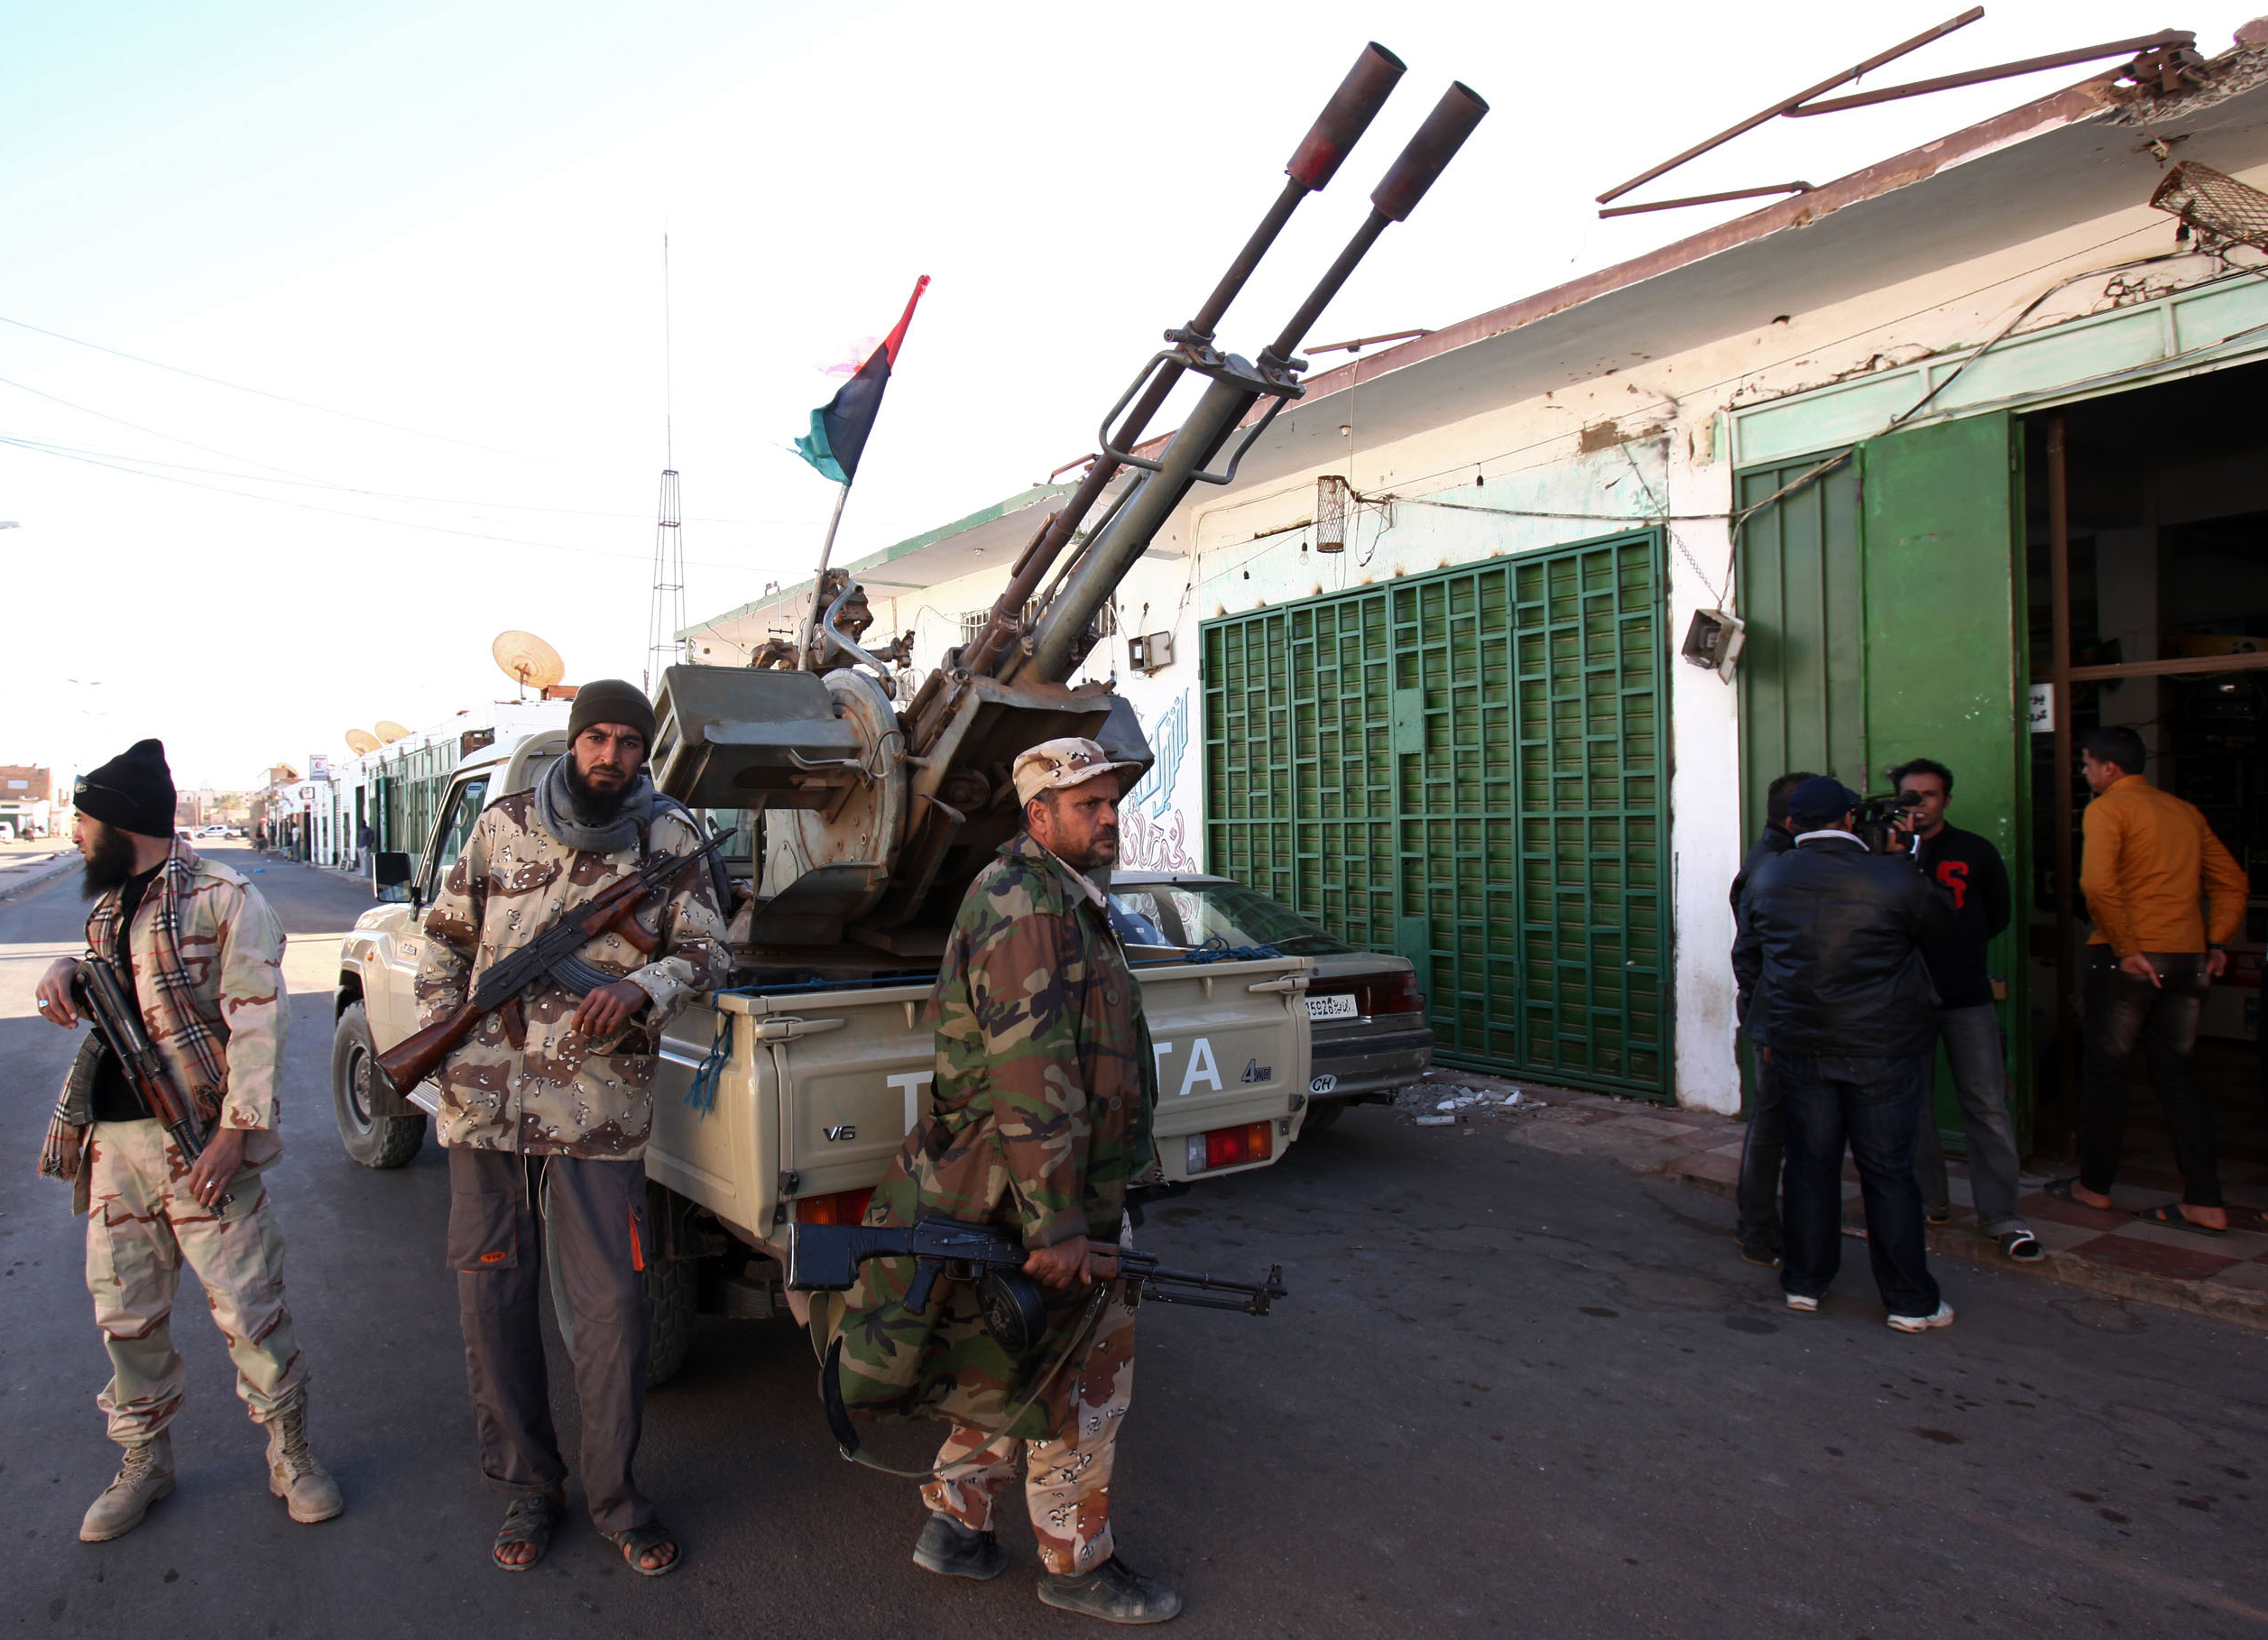 Libyan weapons falling into Somali al Qaeda&#039;s hands, U.S. official warns